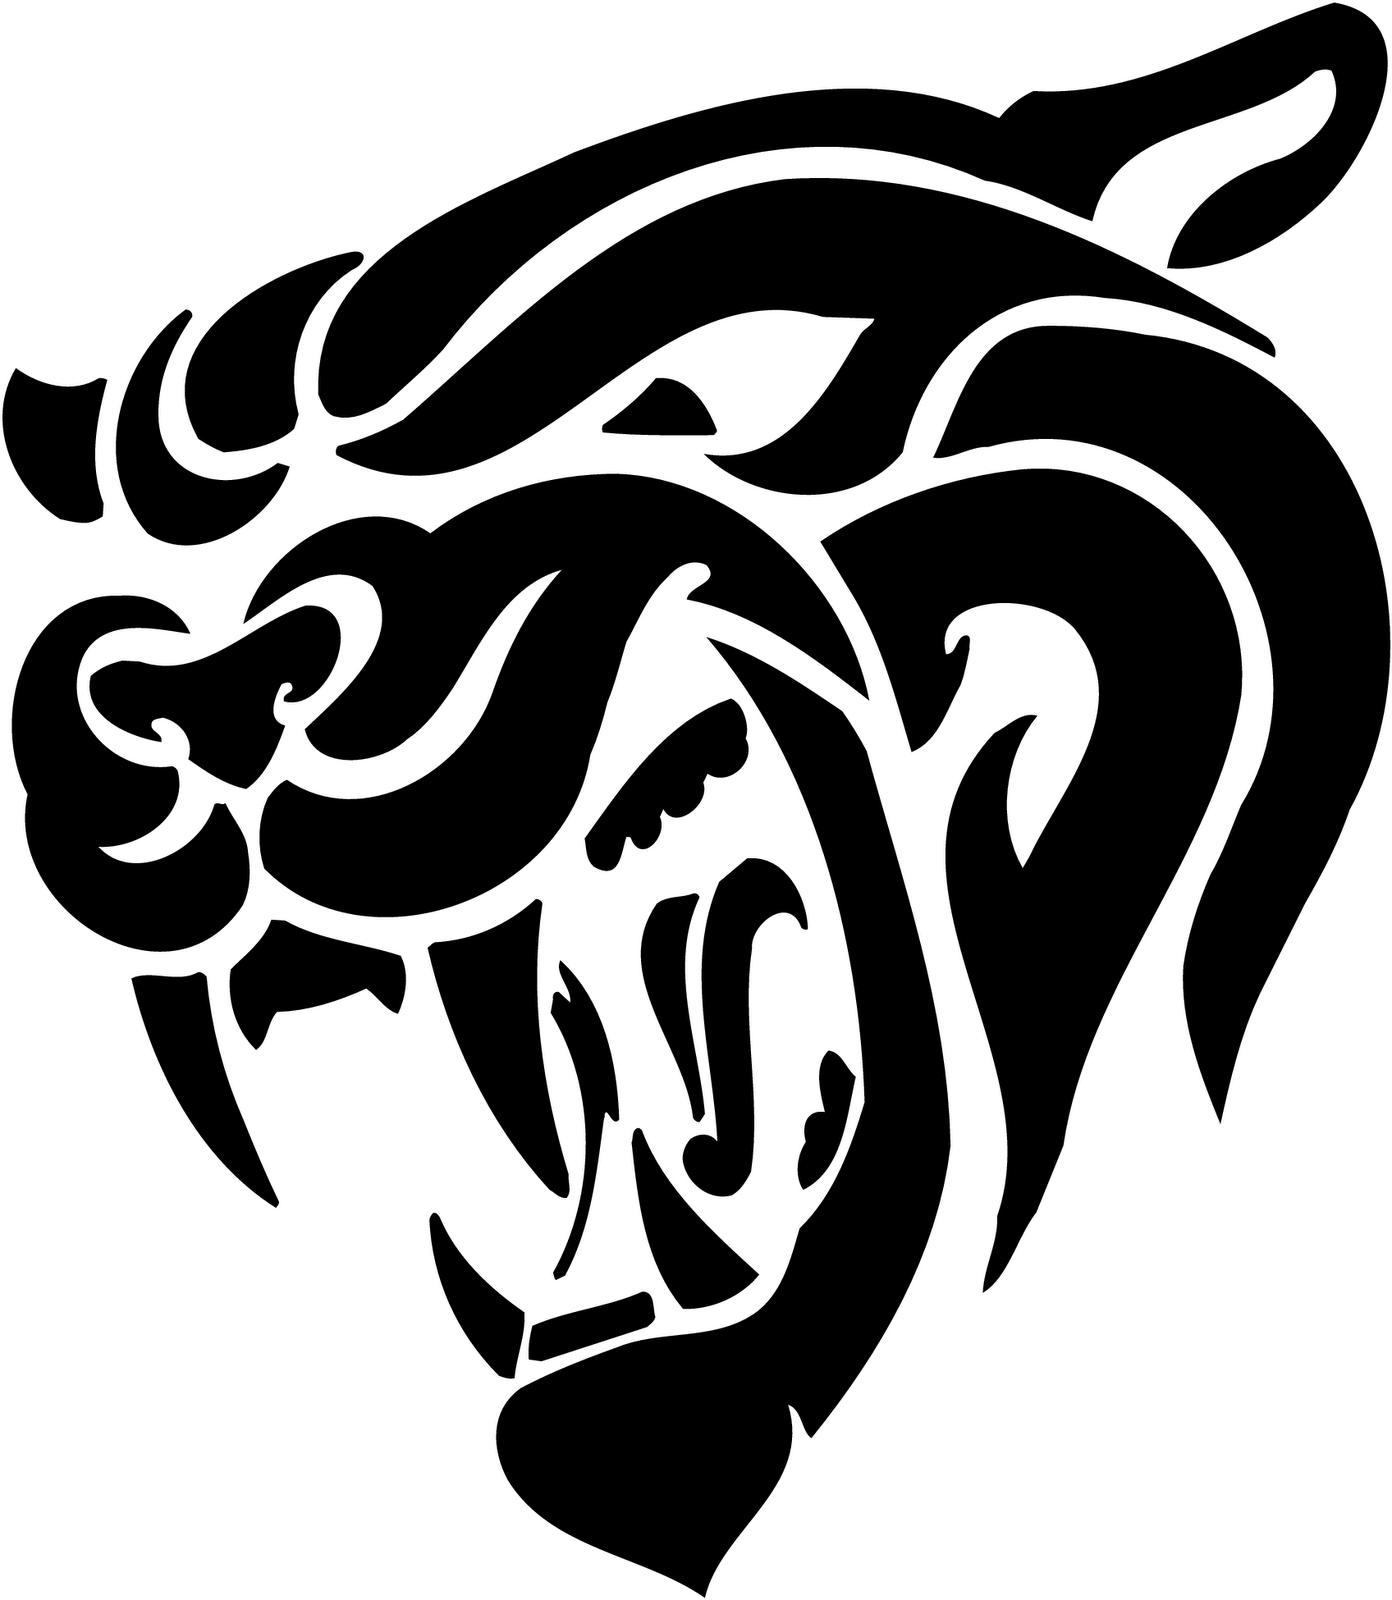 Cougar Clip Art - Synkee